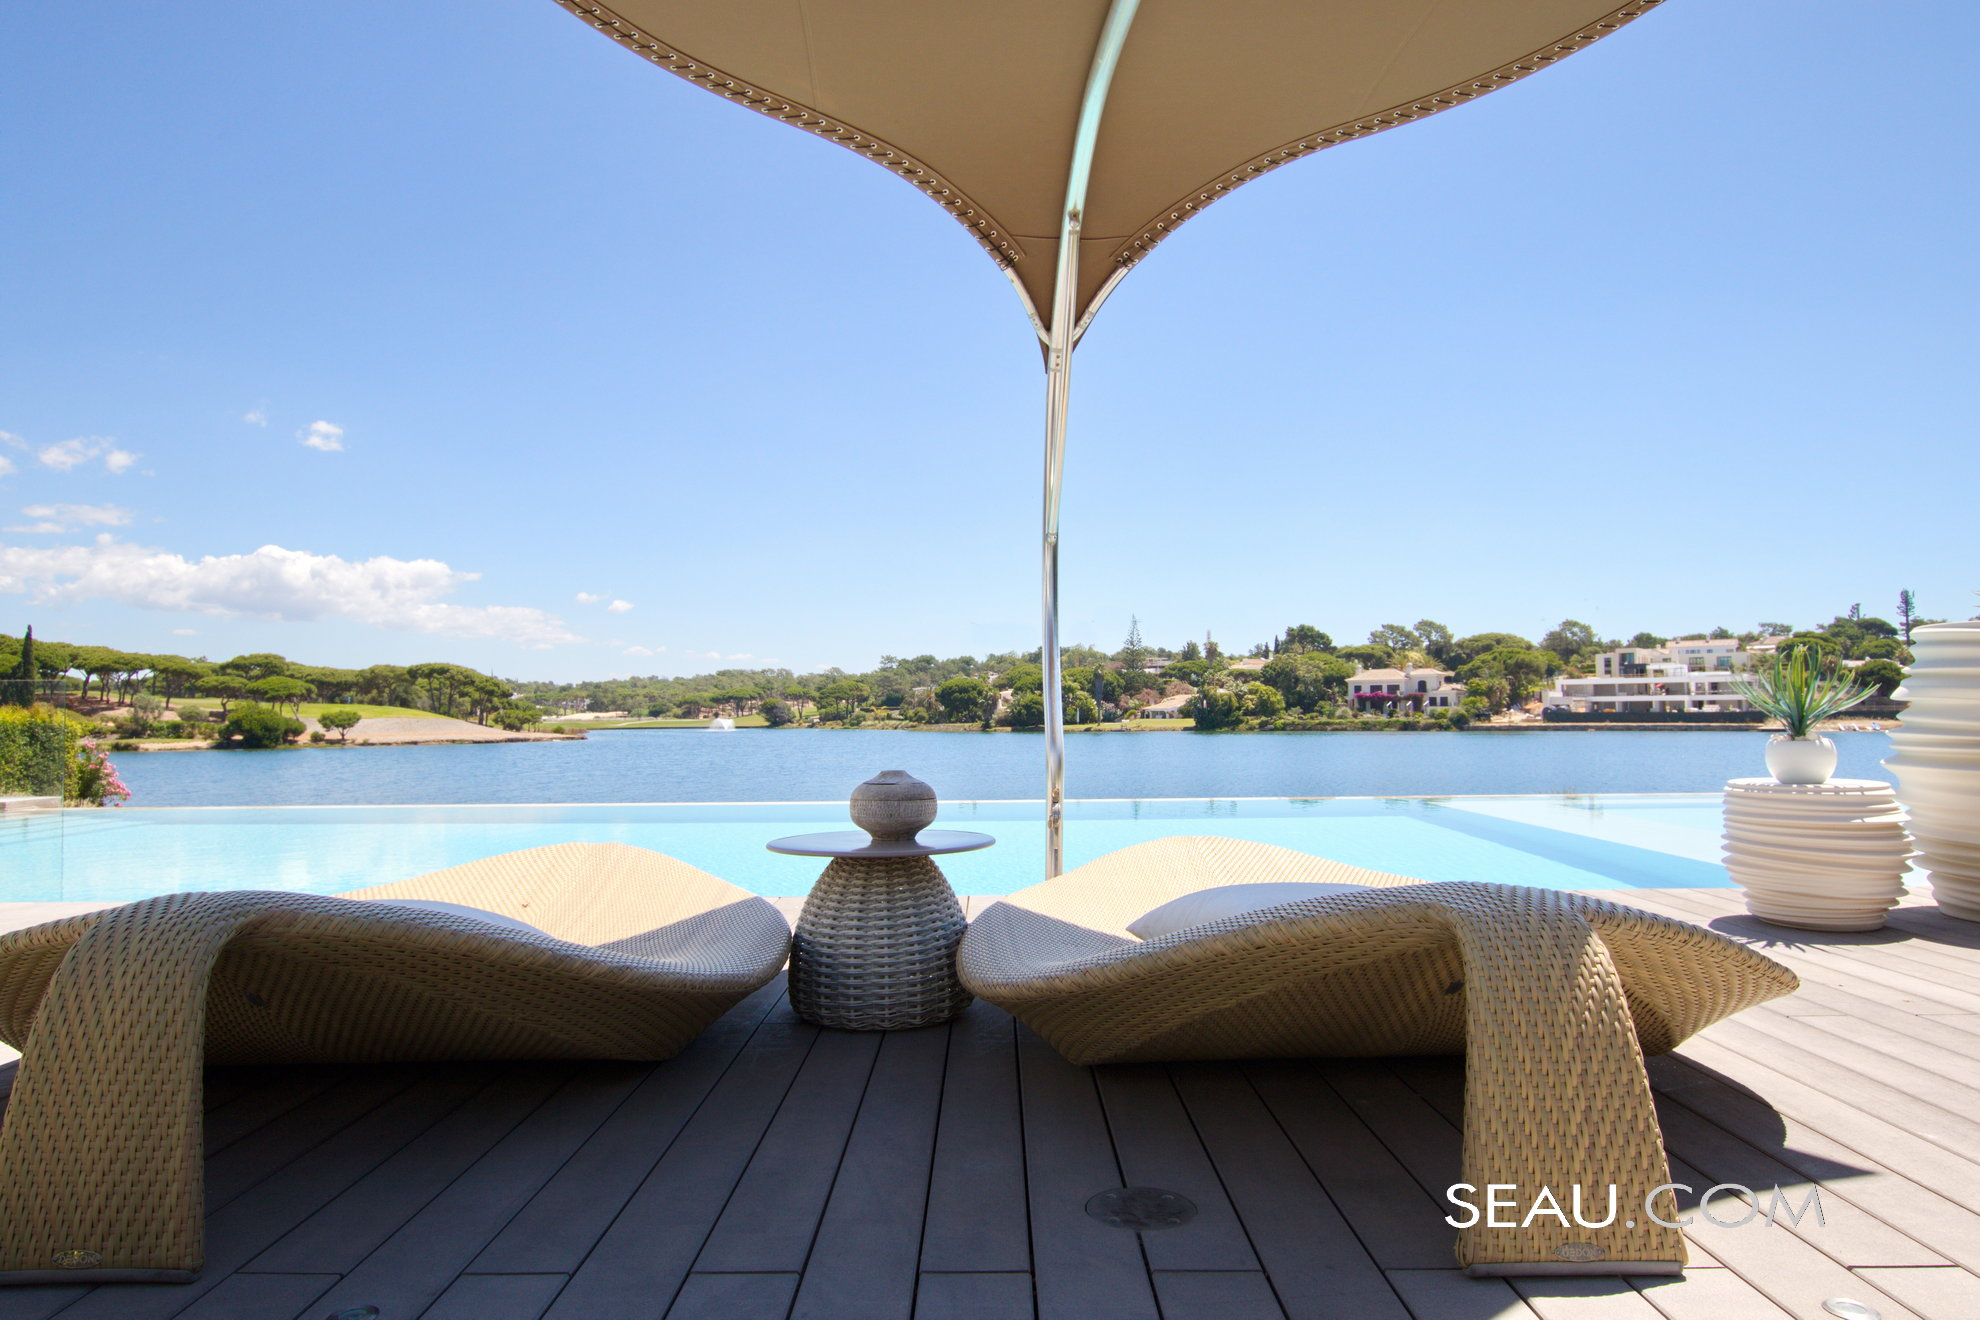 Amazing views from any point of the villa with the heated infinity pool inviting for a swim anytime of the year